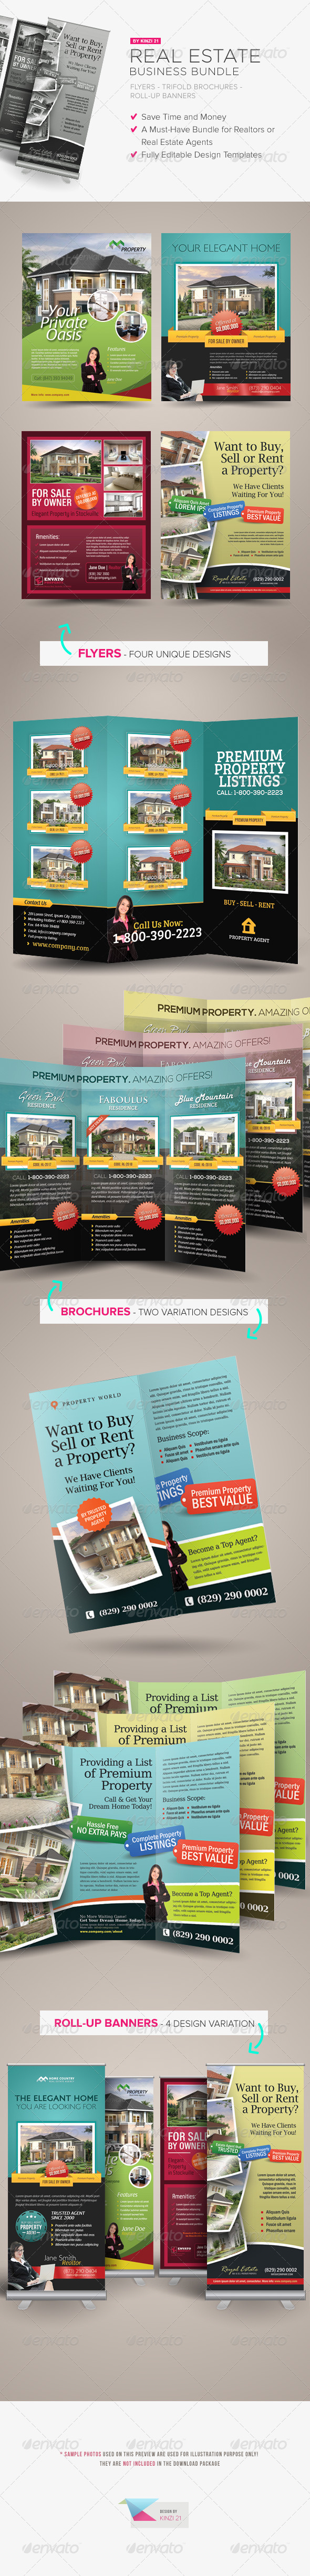 GraphicRiver Real Estate Business Bundle 5712775